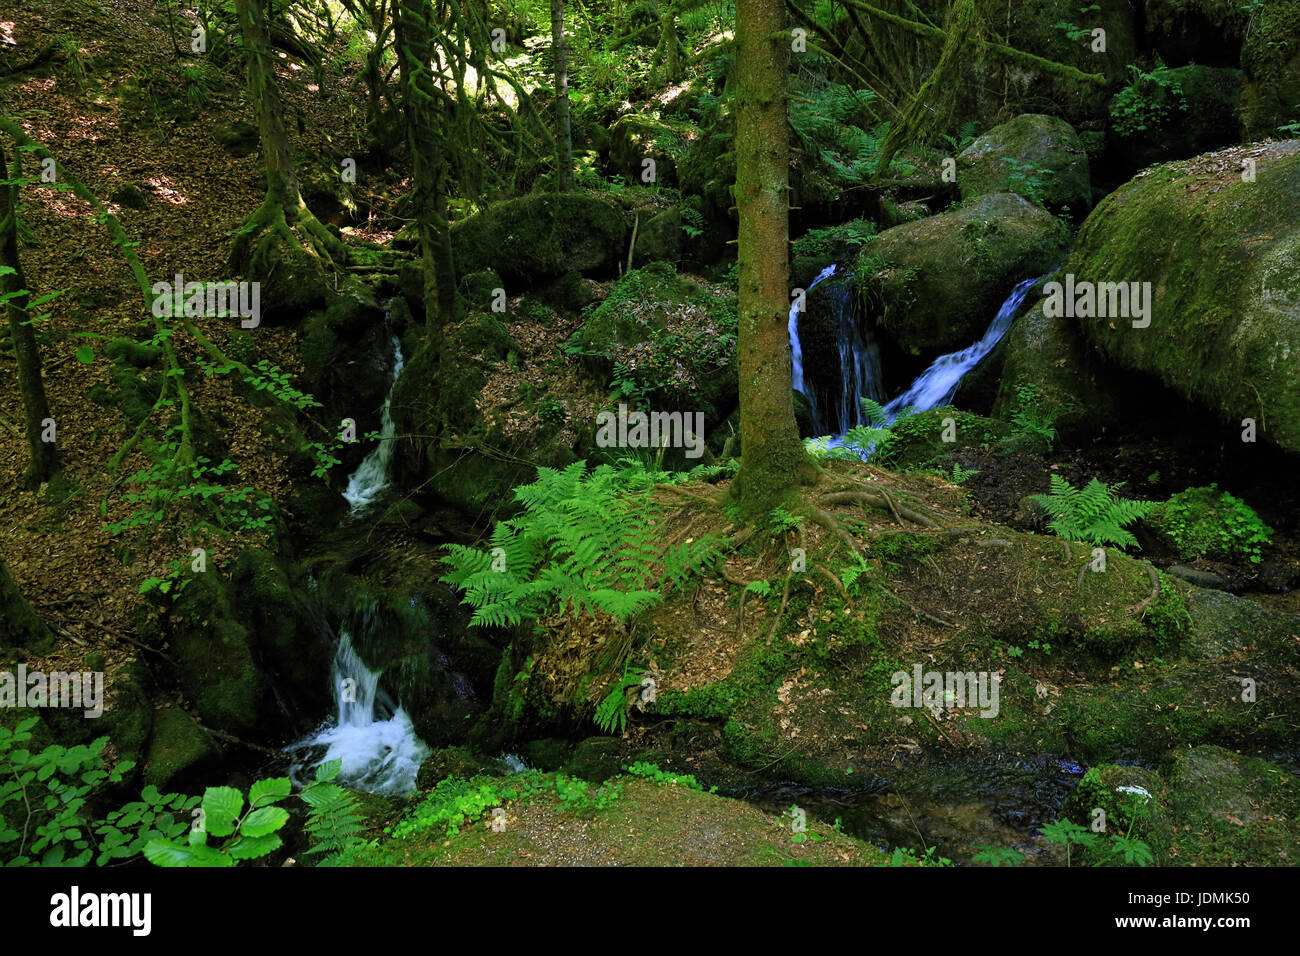 Gertelbach waterfalls, Black Forest, Germany - Stock Image